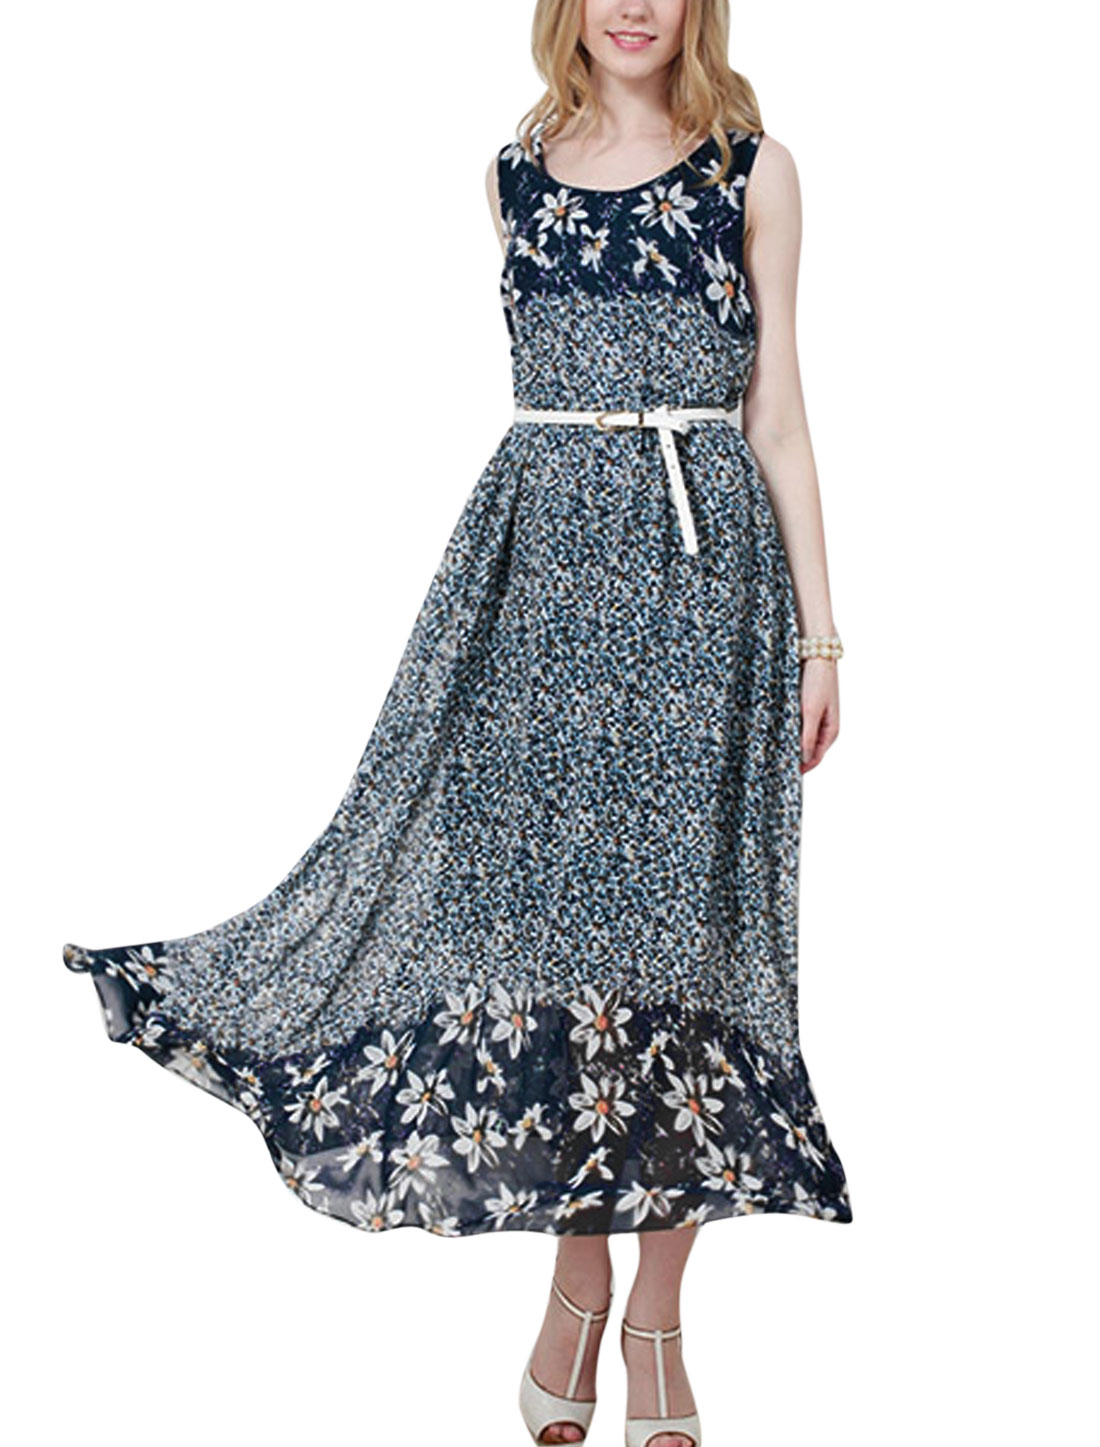 Lady Stretchy Waist Floral Prints Fully Lined Dress w Belt Navy Blue S